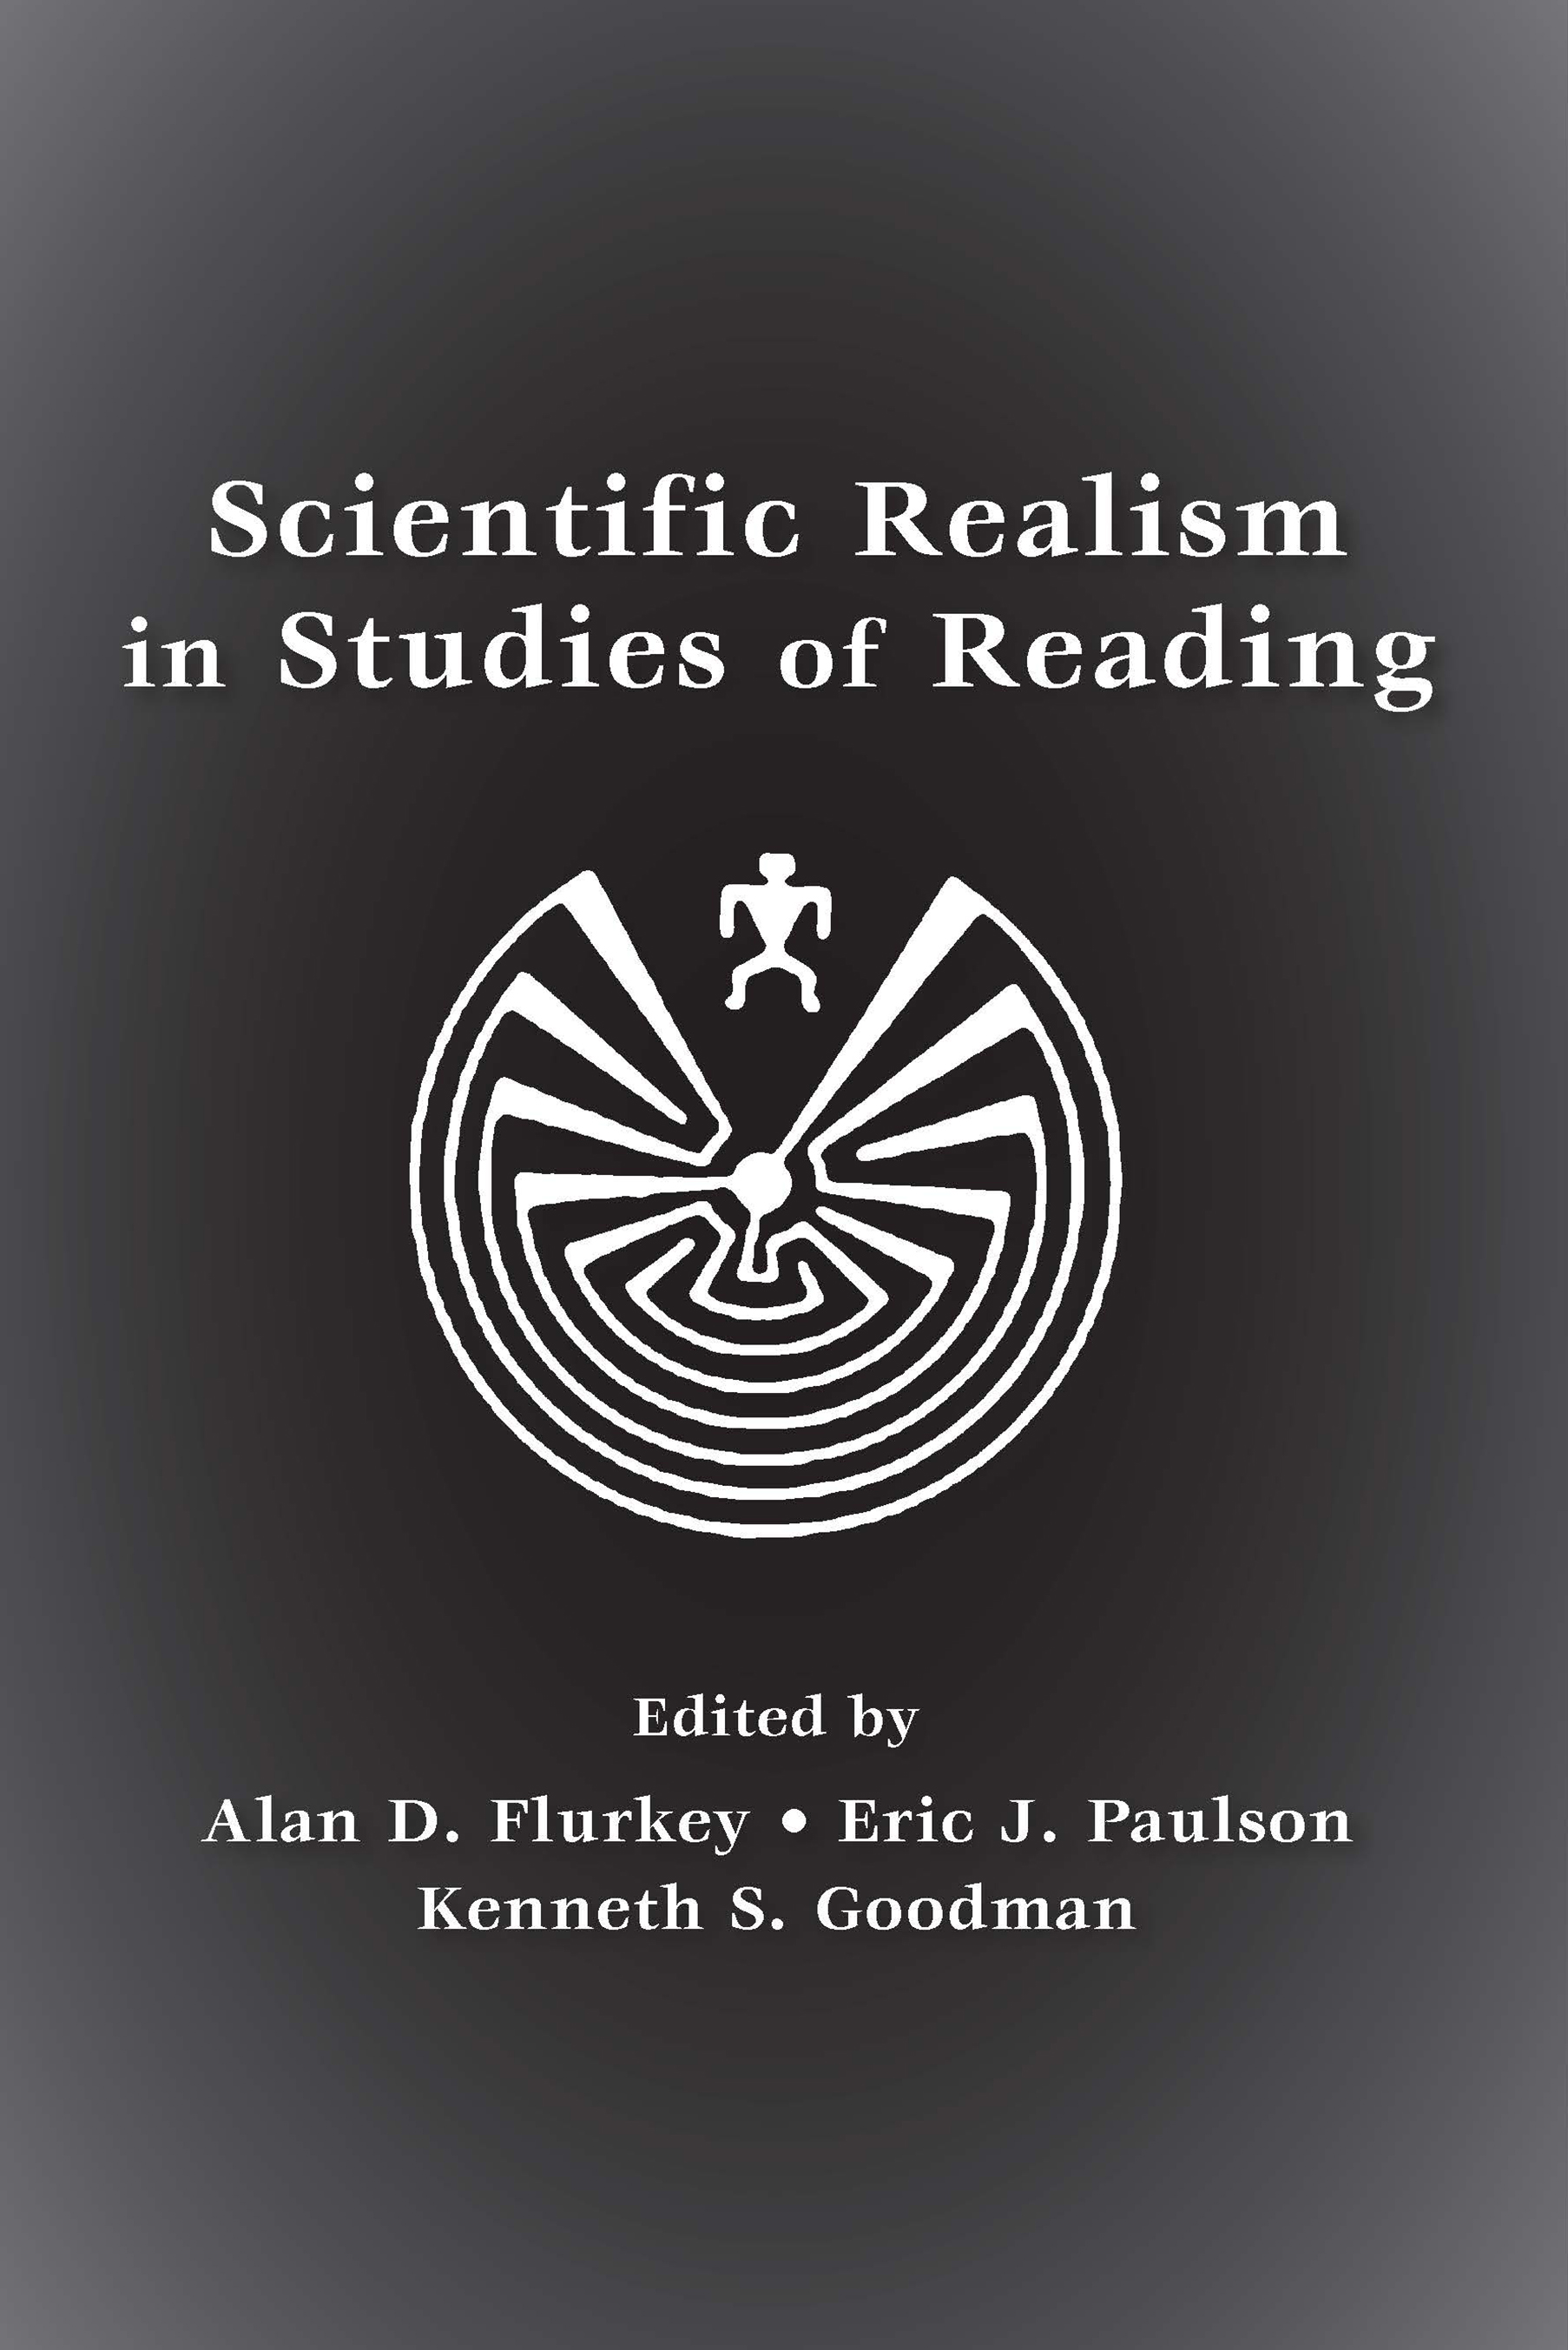 Re-Reading Eye-Movement Research Support for Transactional Models of Reading